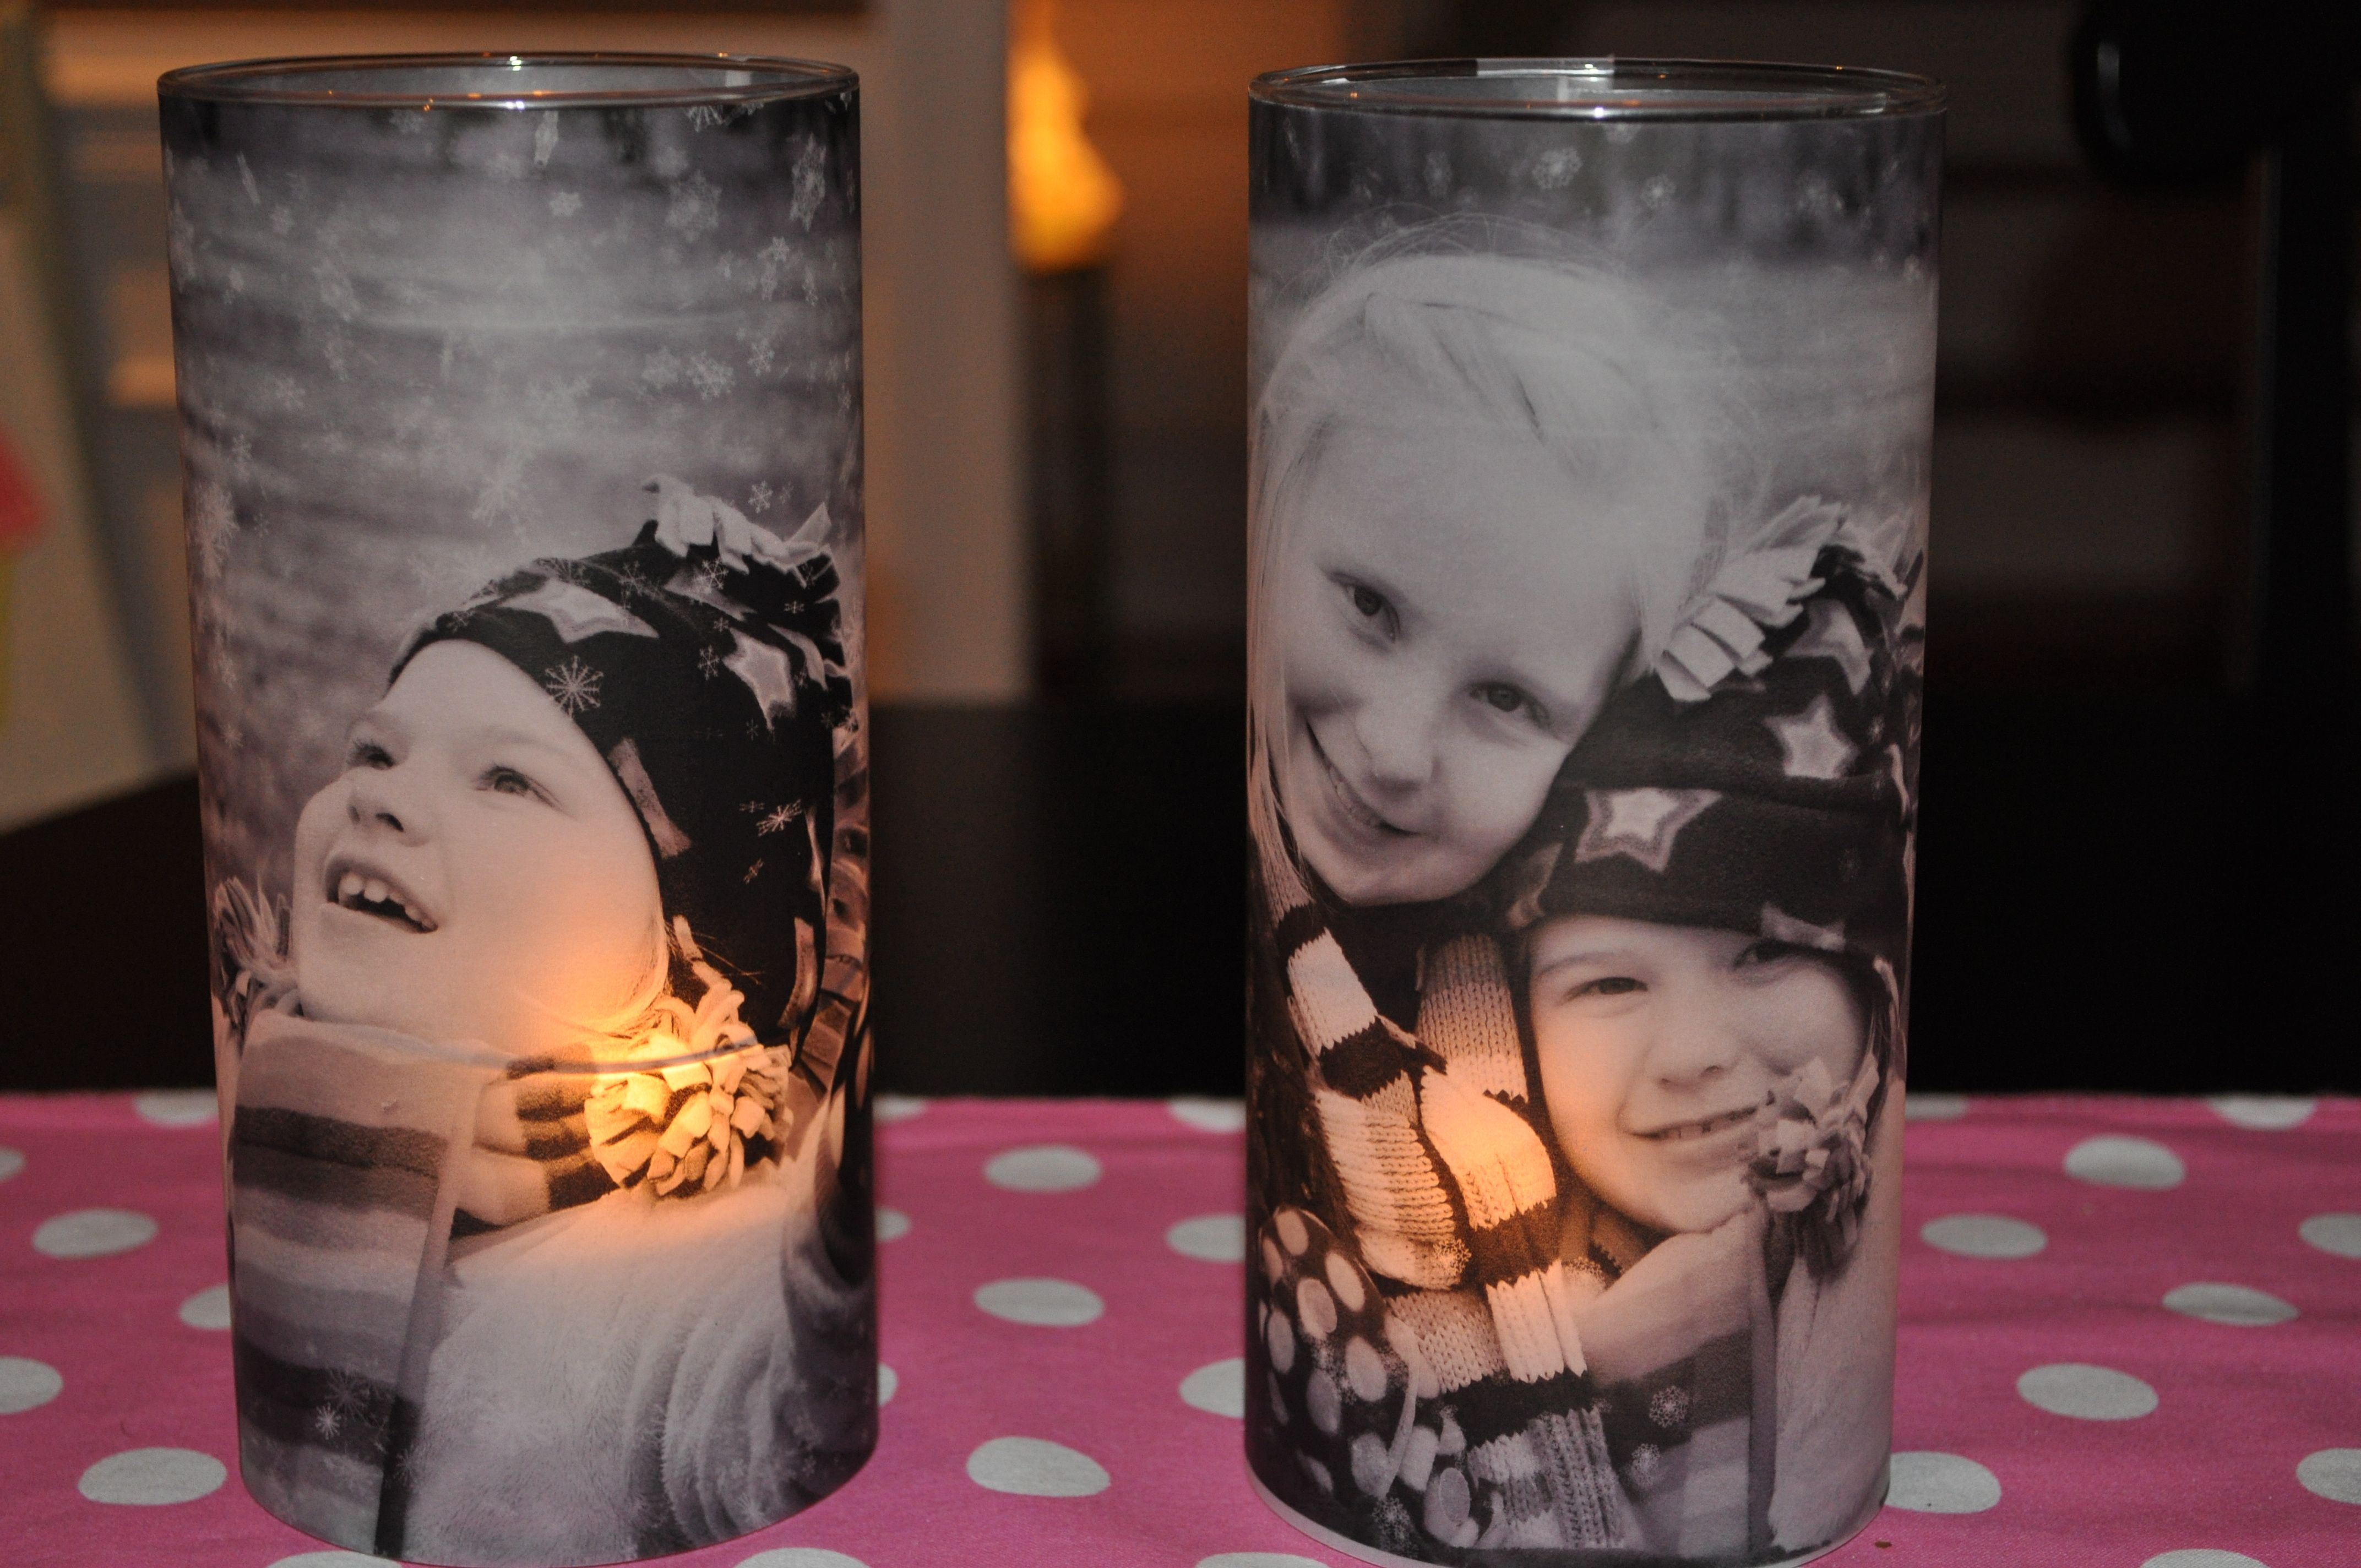 Votive candle holders made with vases, and printed vellum pictures, wrapped around outside of vase.  Printed pictures on Vellum from Michael's, let ink dry, then cut to size.  I used double sided tape to secure to vase.